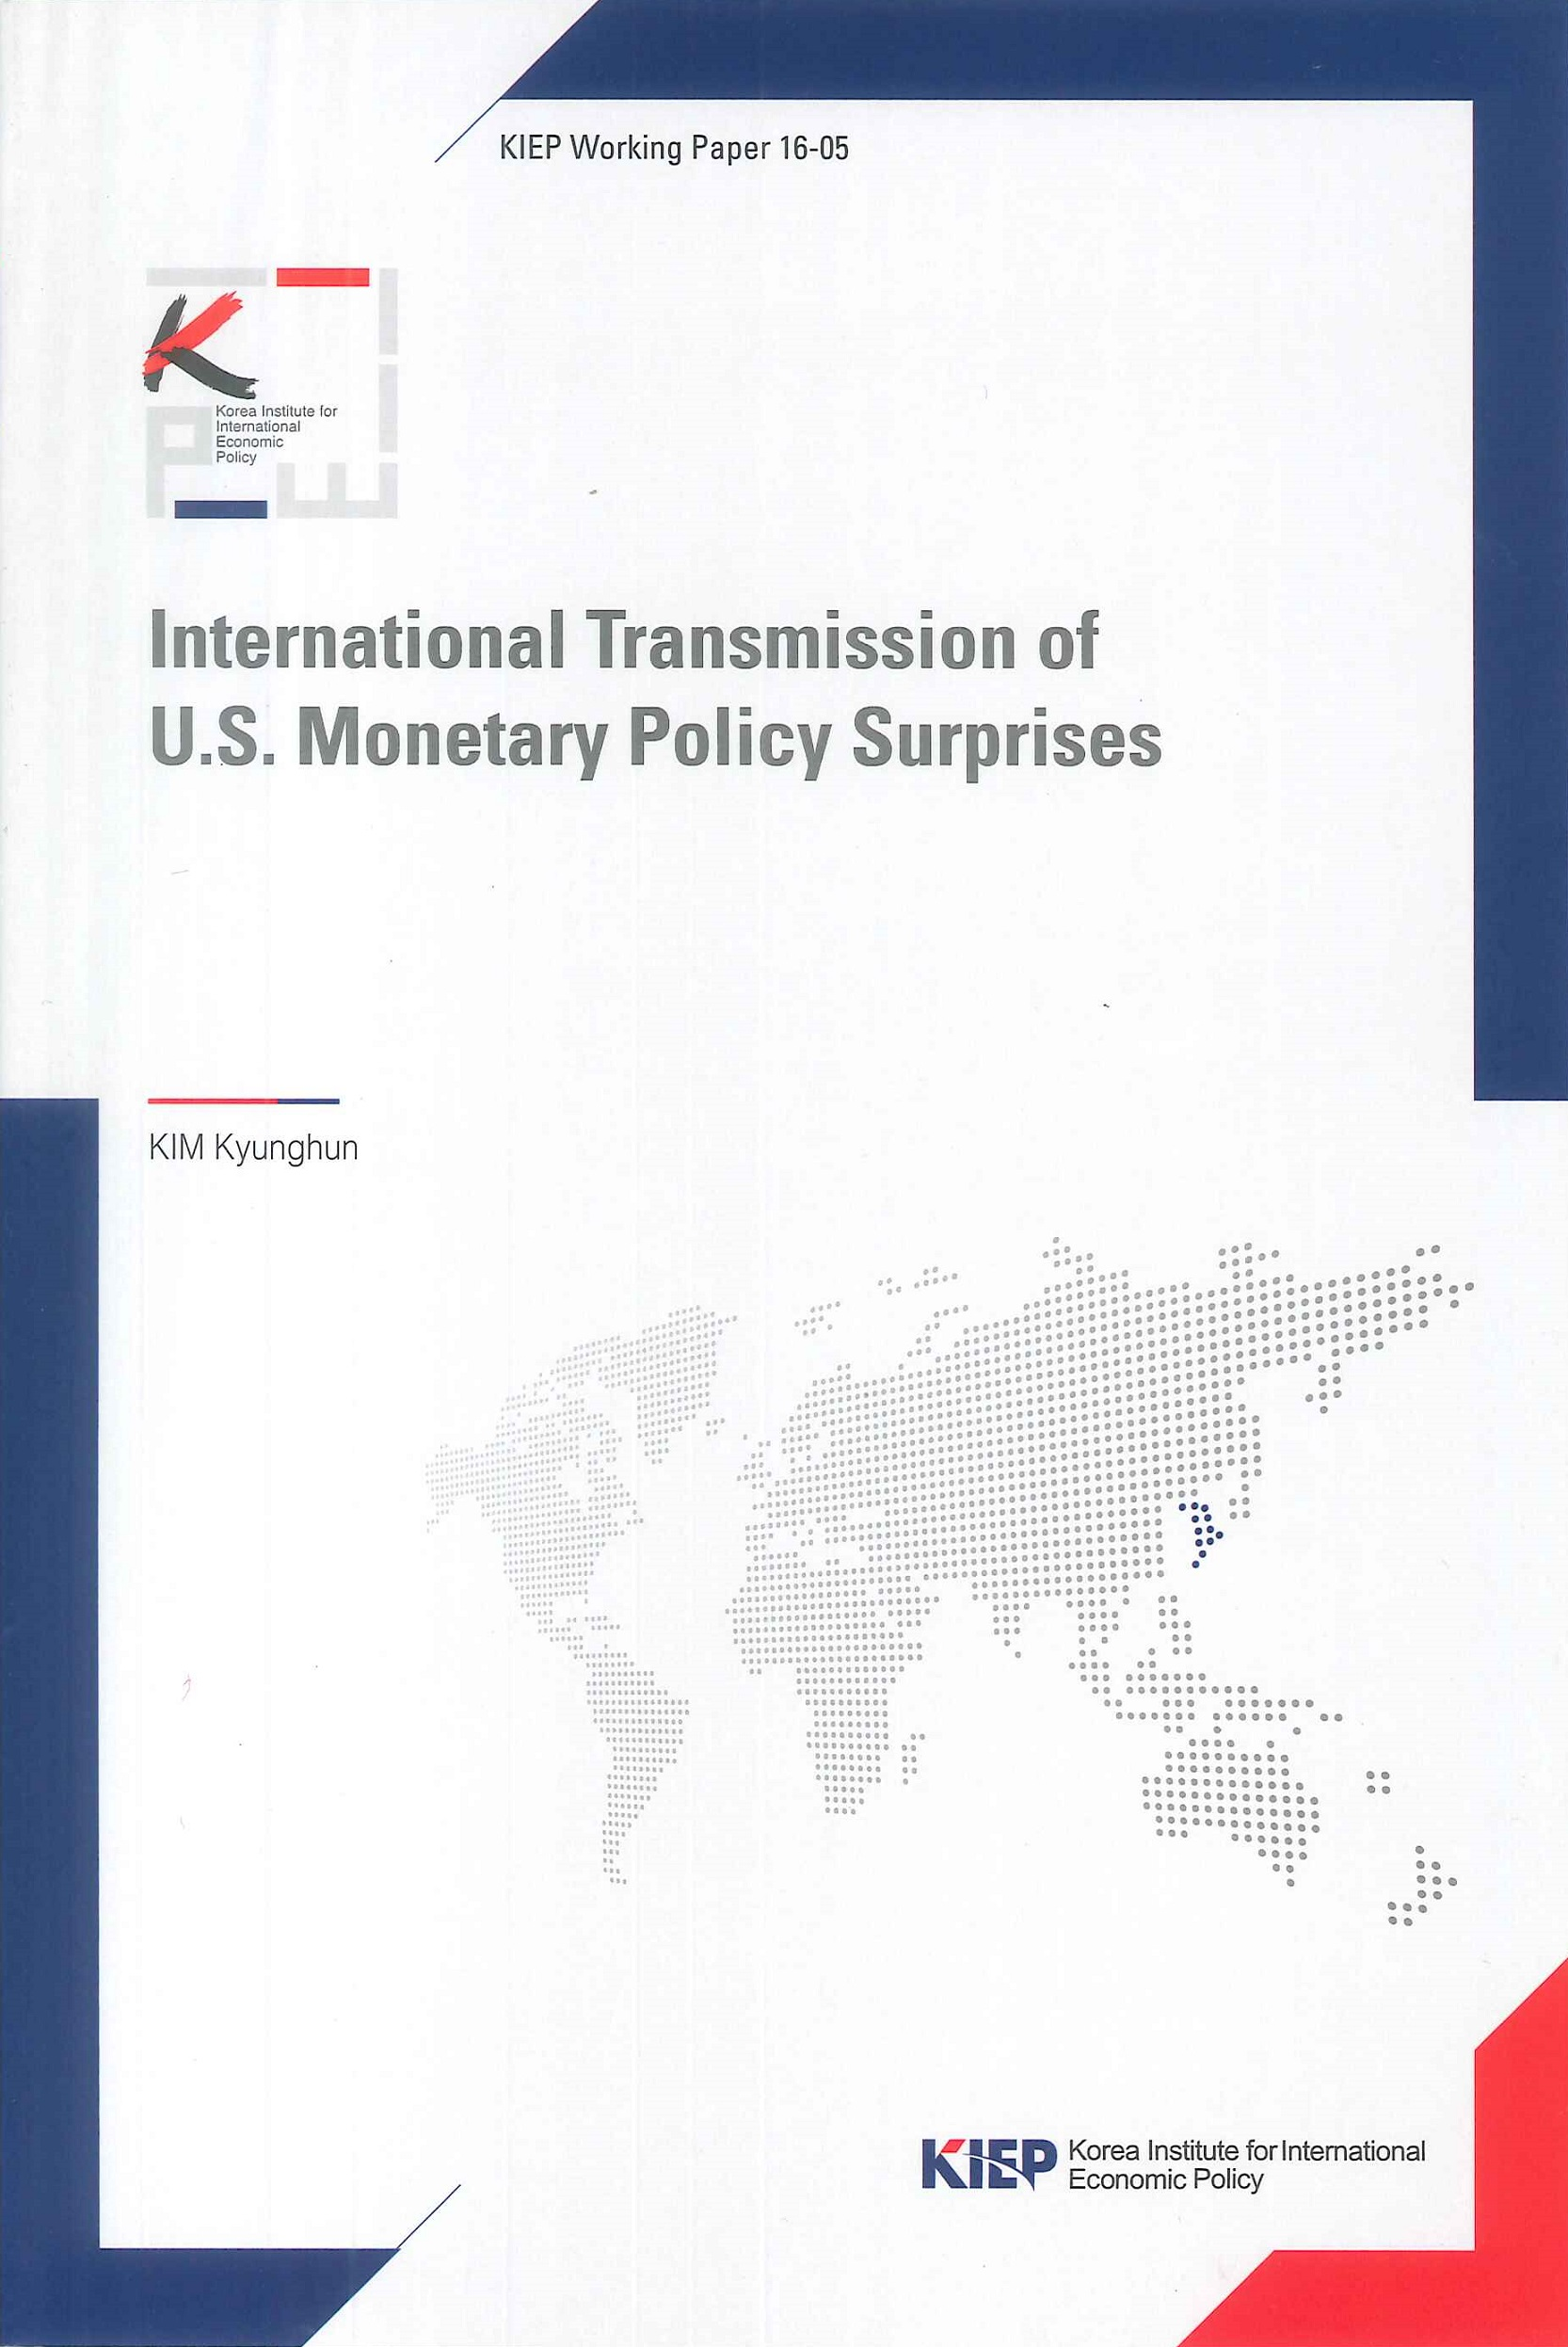 International transmission of U.S. monetary policy surprises